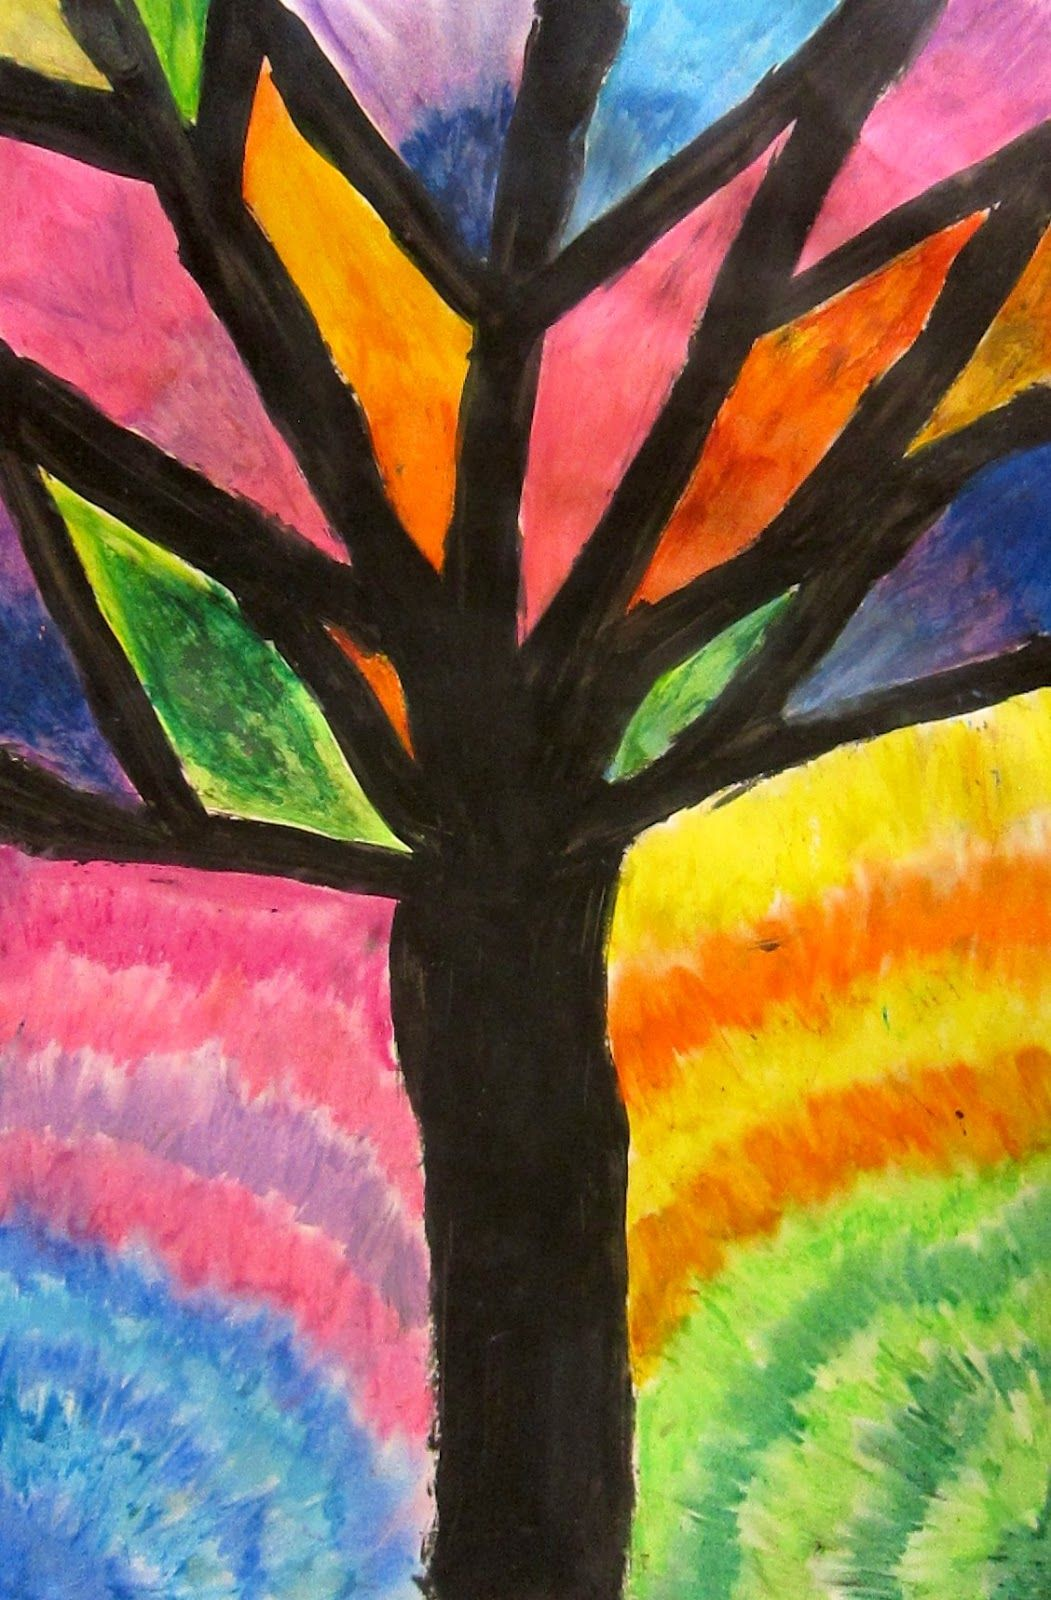 Abstract Oil Pastel Trees 4th/5th grade Kuvataide, Syksy